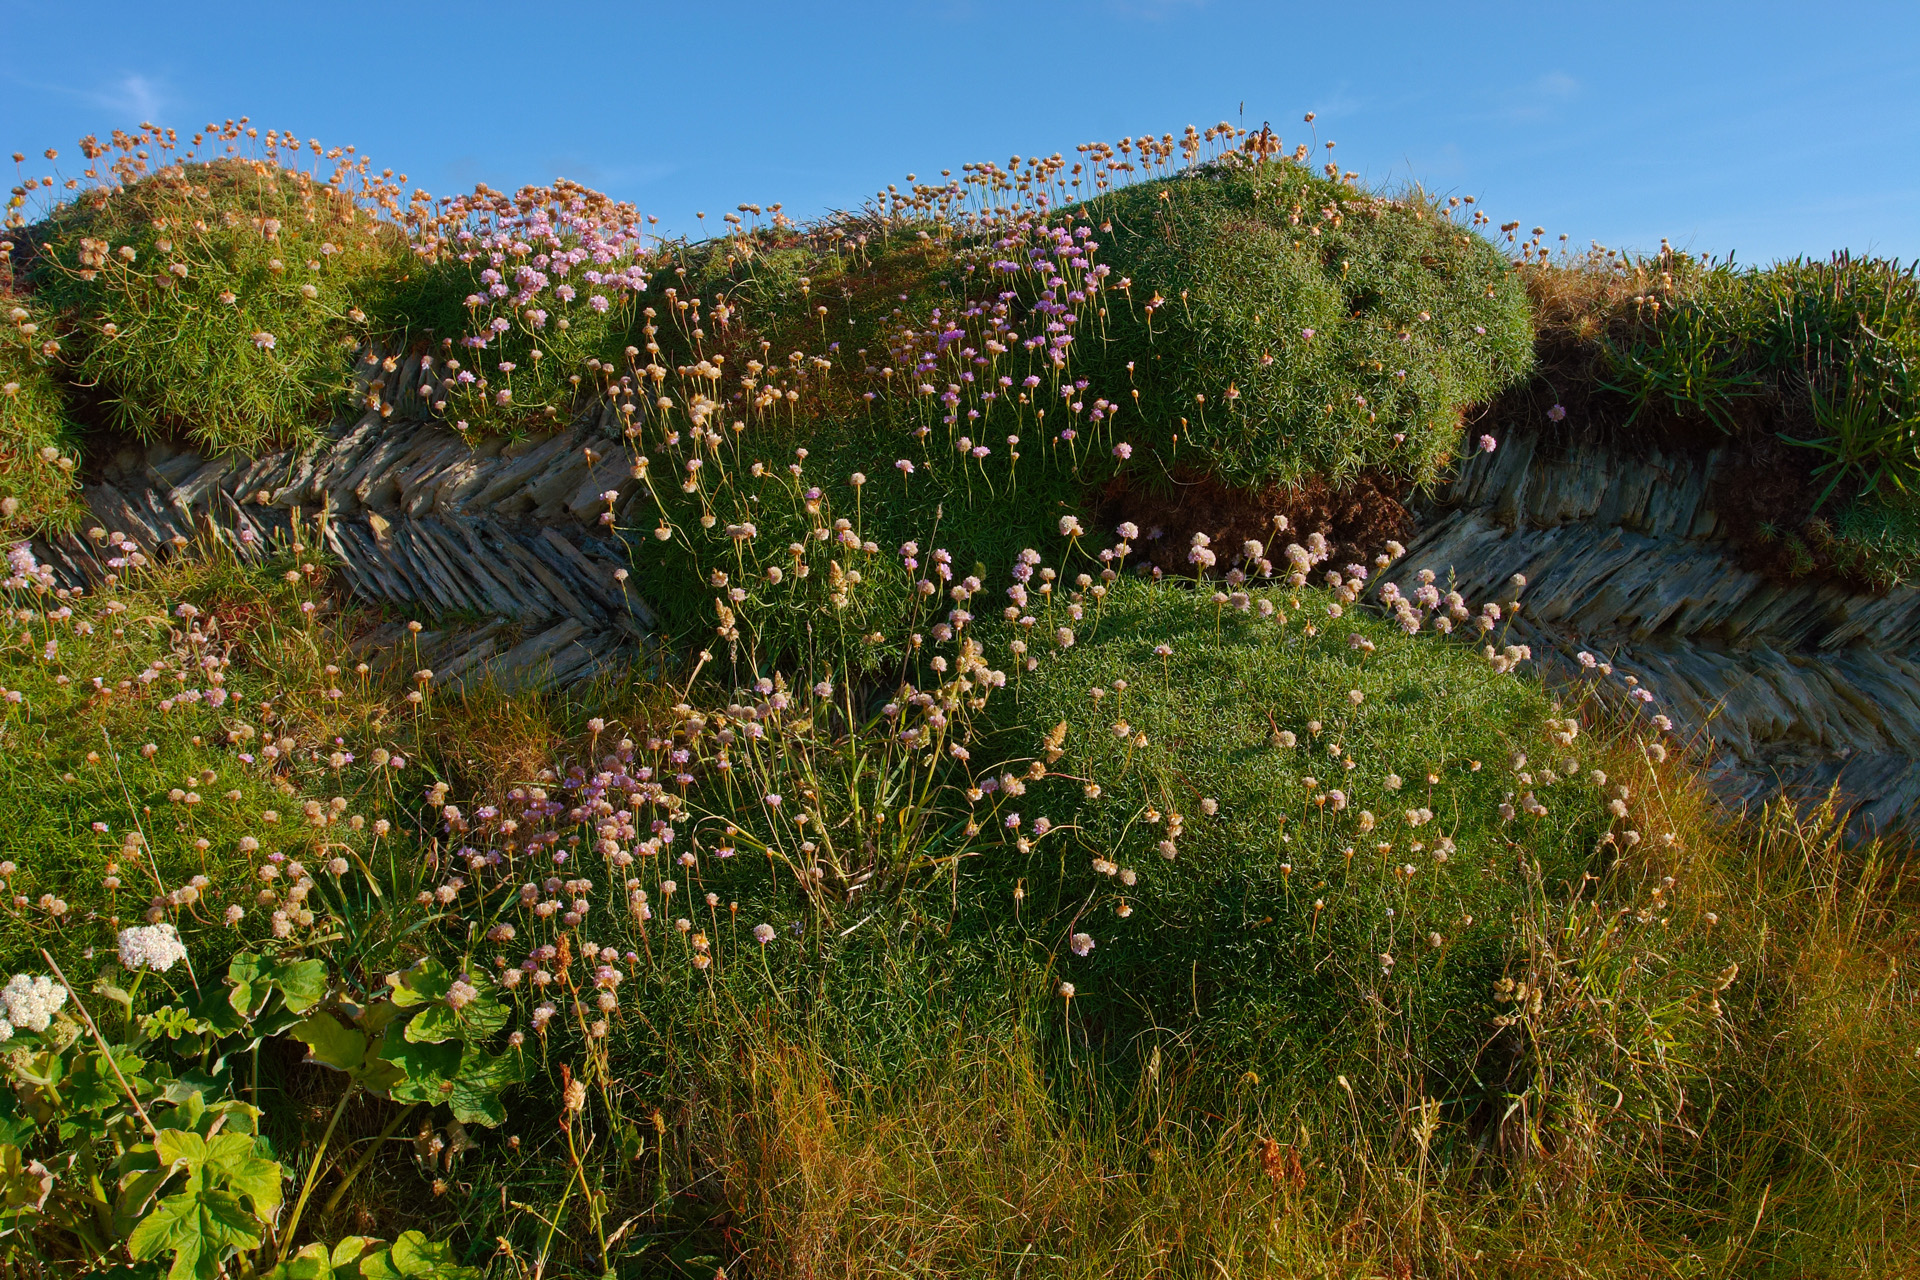 Dry stone wall overgrown with moss, grass and wild flowers near